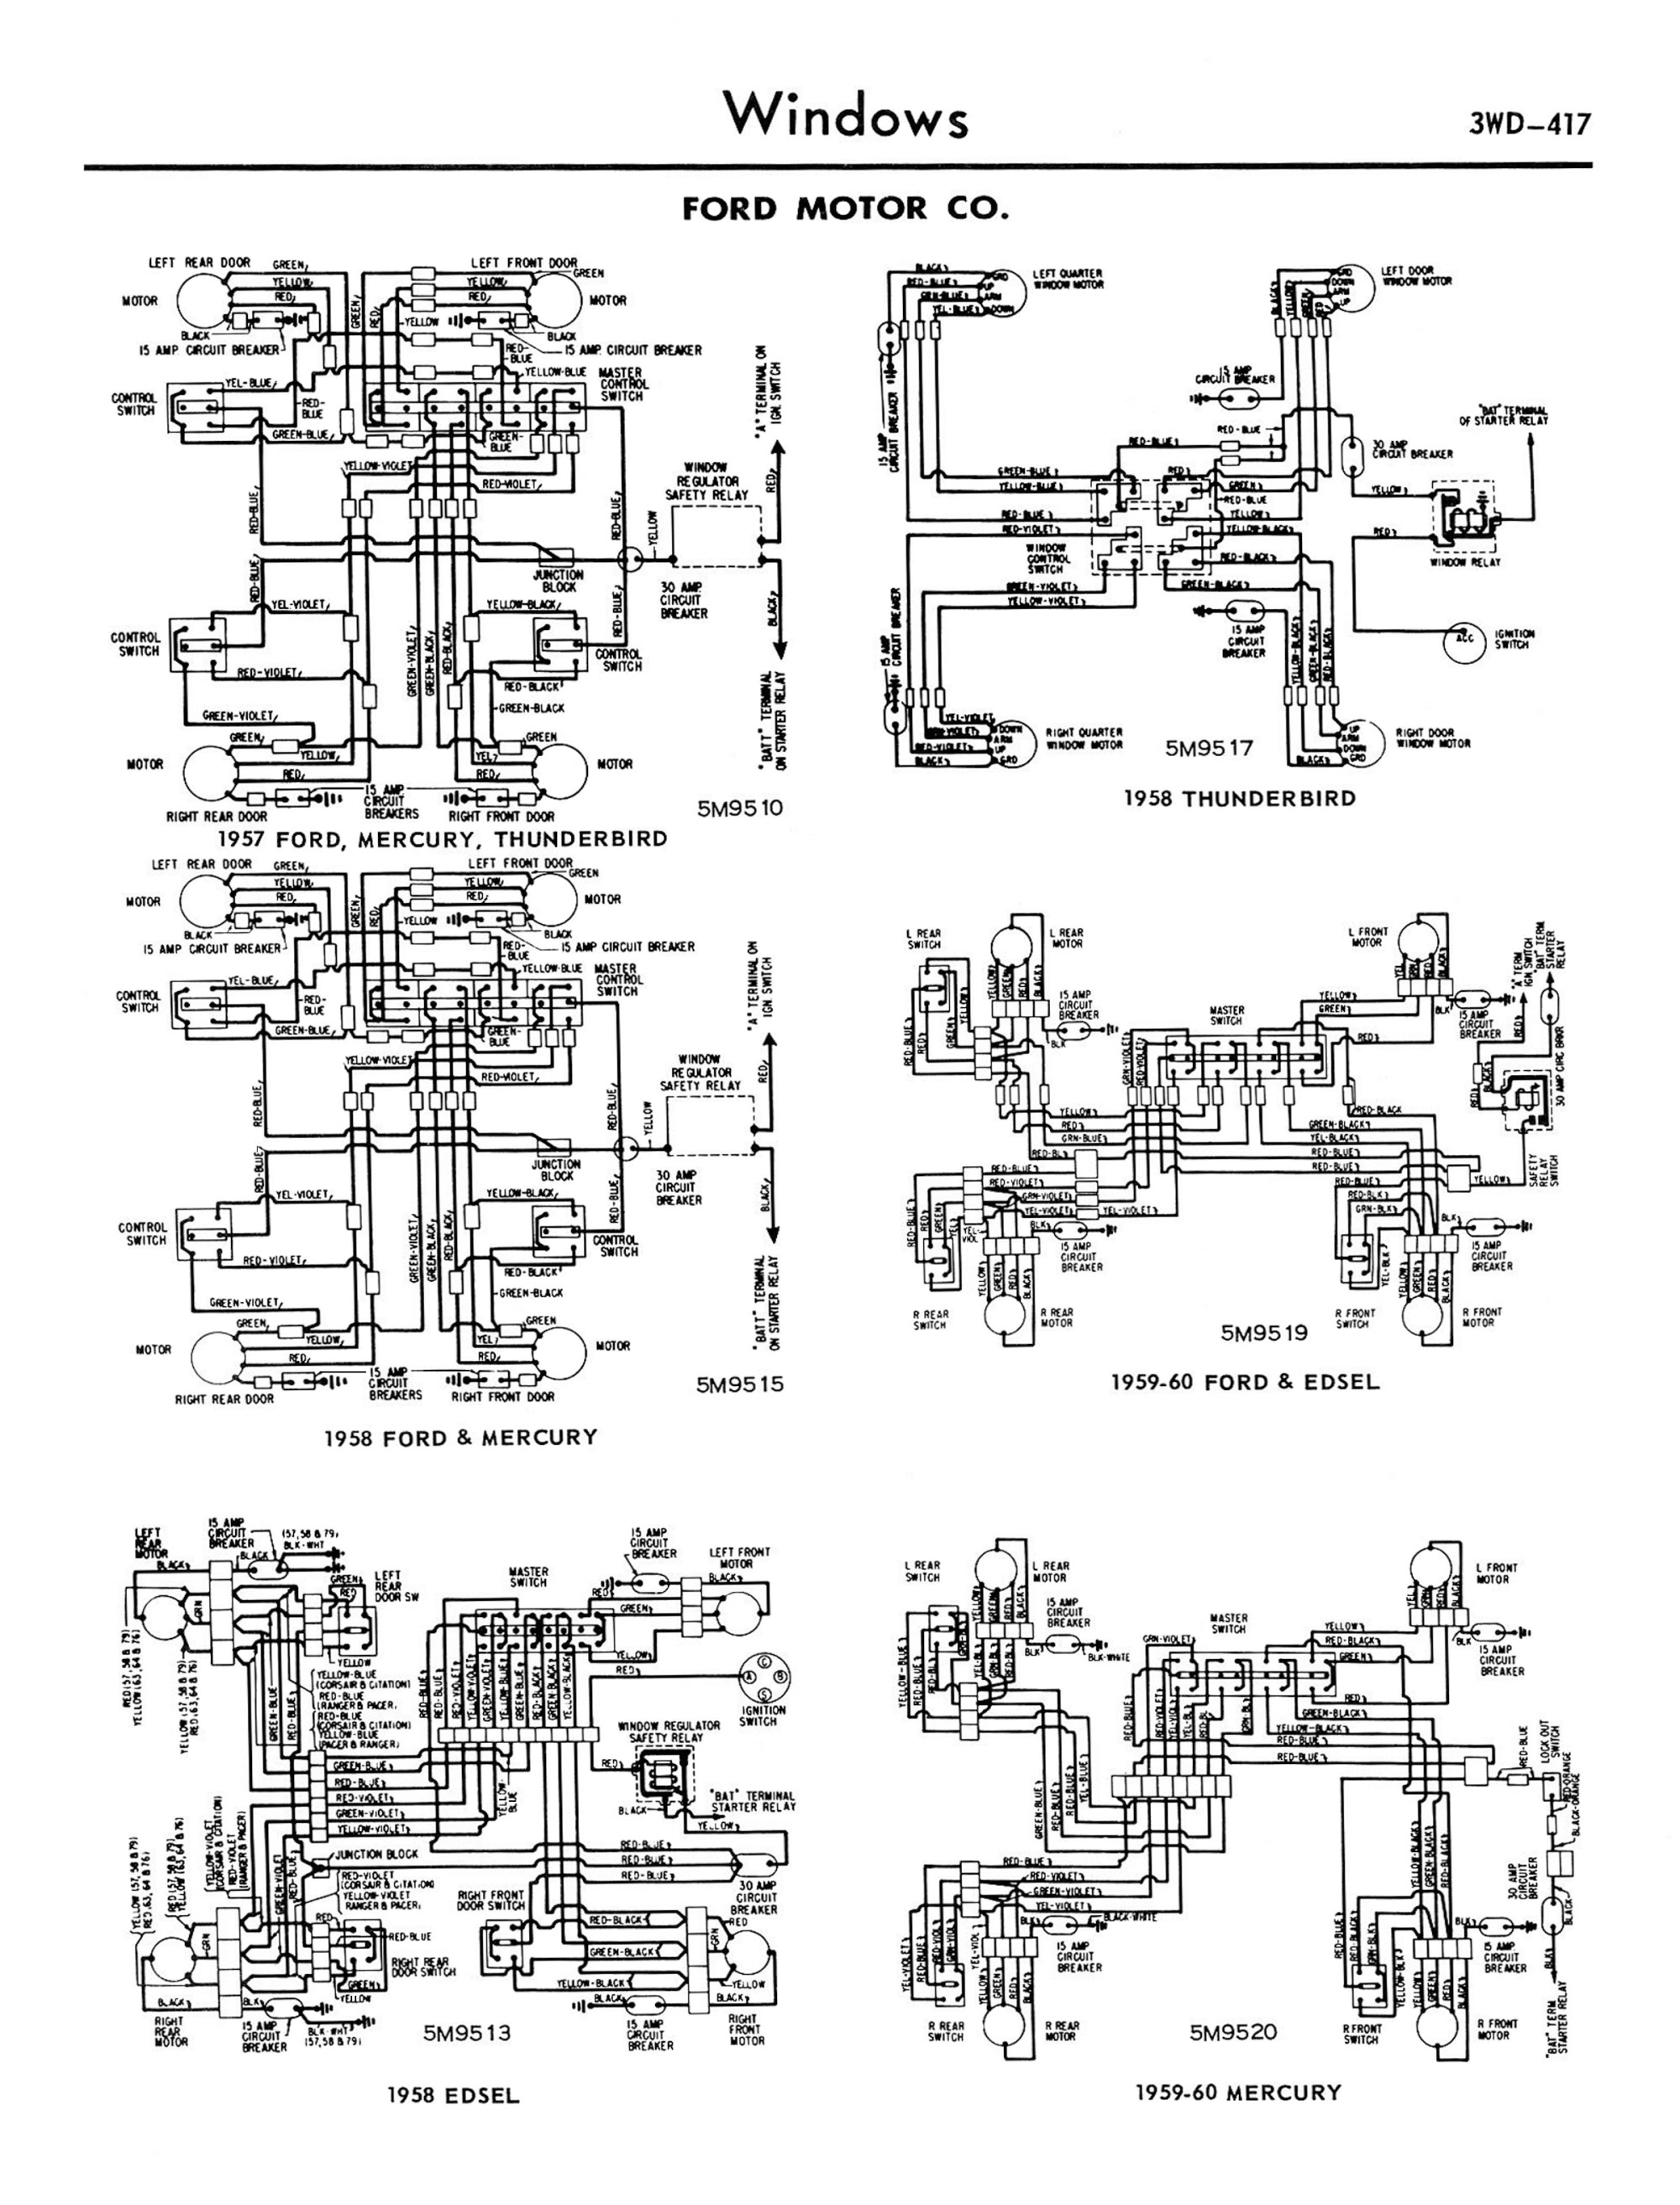 hight resolution of 1958 thunderbird wiring diagram 31 wiring diagram images 1956 thunderbird 1955 thunderbird